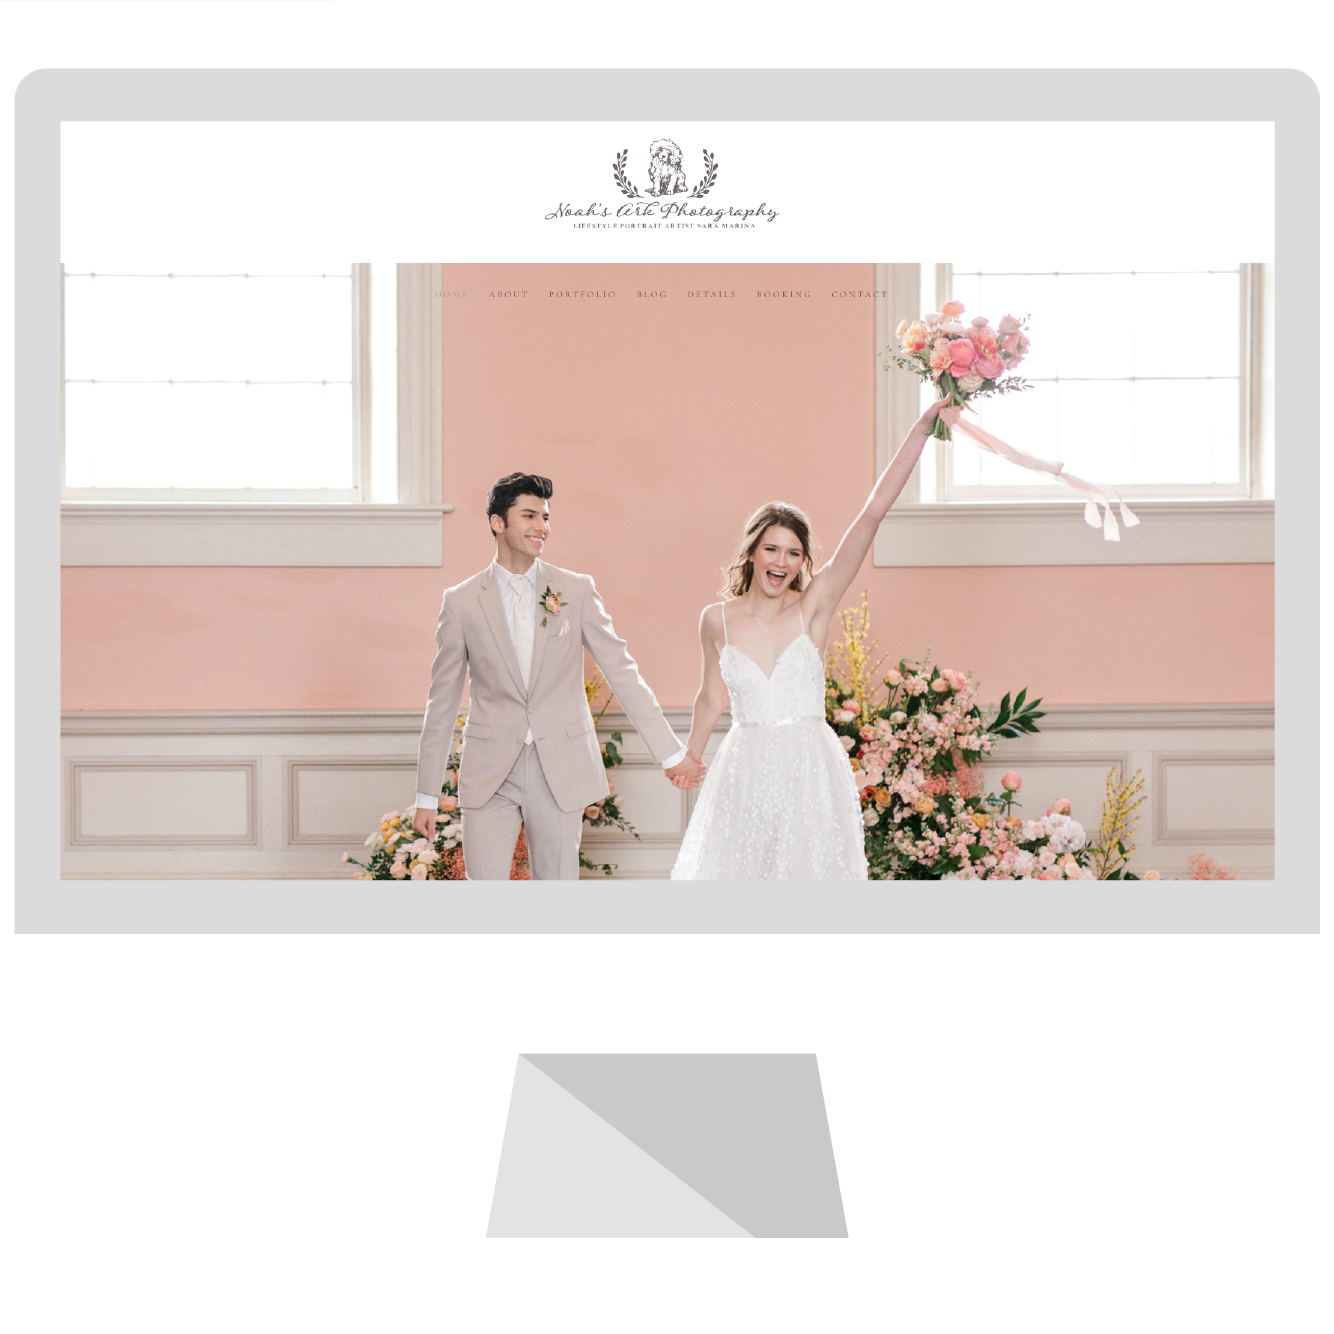 Emma Rose Company | Squarespace Website Designer for Photographer and Seattle Wedding and Portrait Photographer